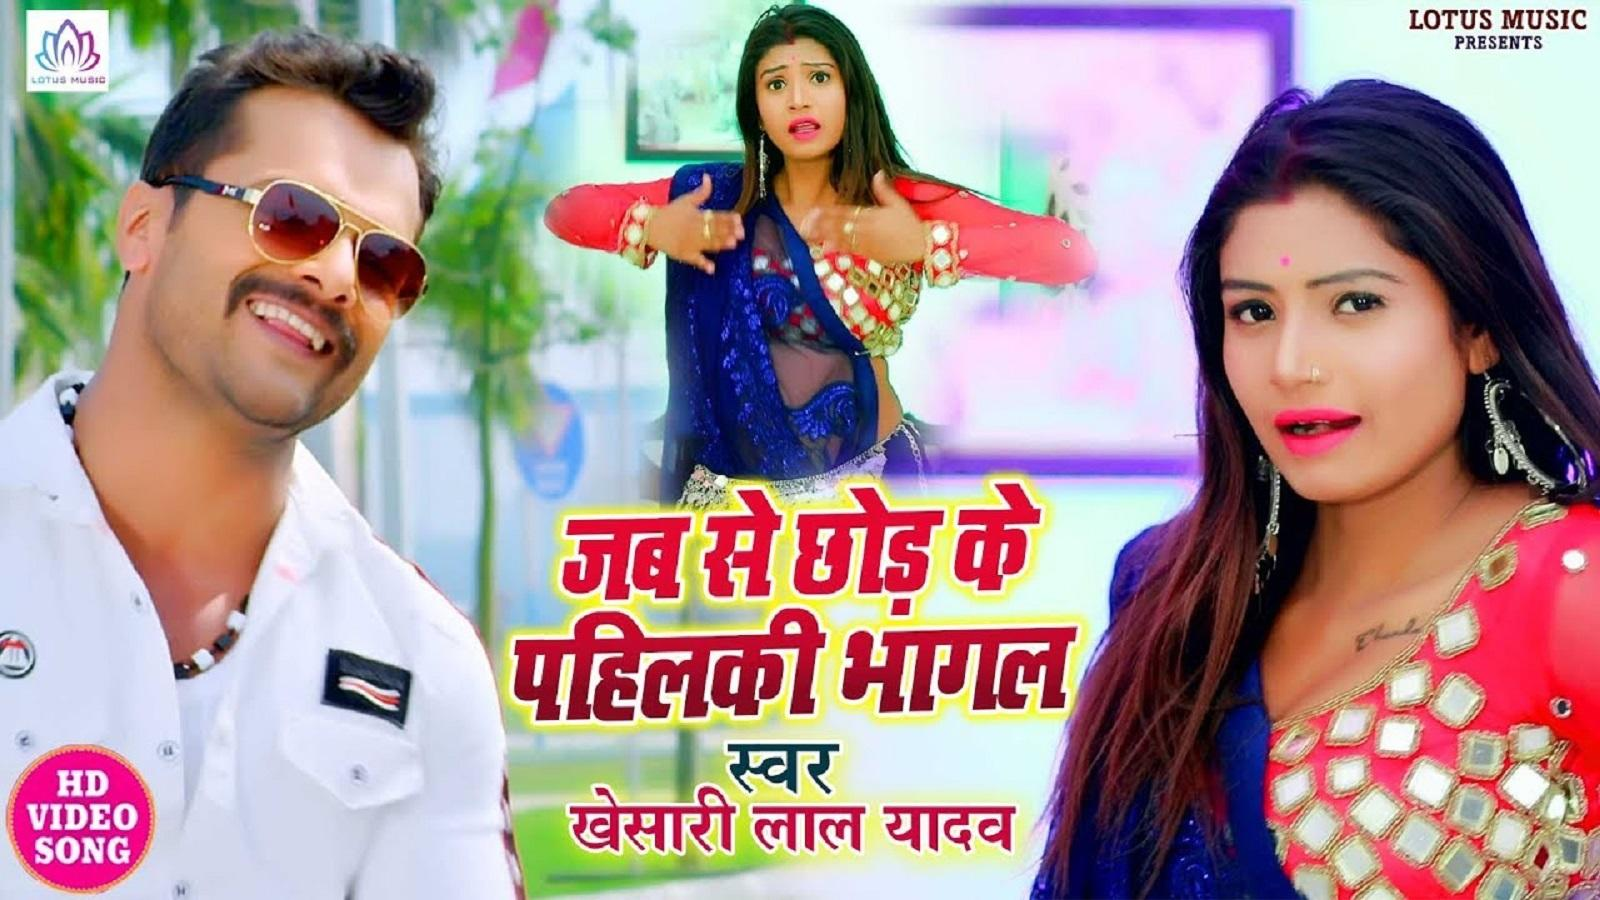 Khesari Bhojpuri Song Videos 2020, HD Bhojpuri Gana: Khesari Lal Yadav's  Latest Bhojpuri HD Video Song 'Jabse Chhod Ke Pahilki Bhagal'